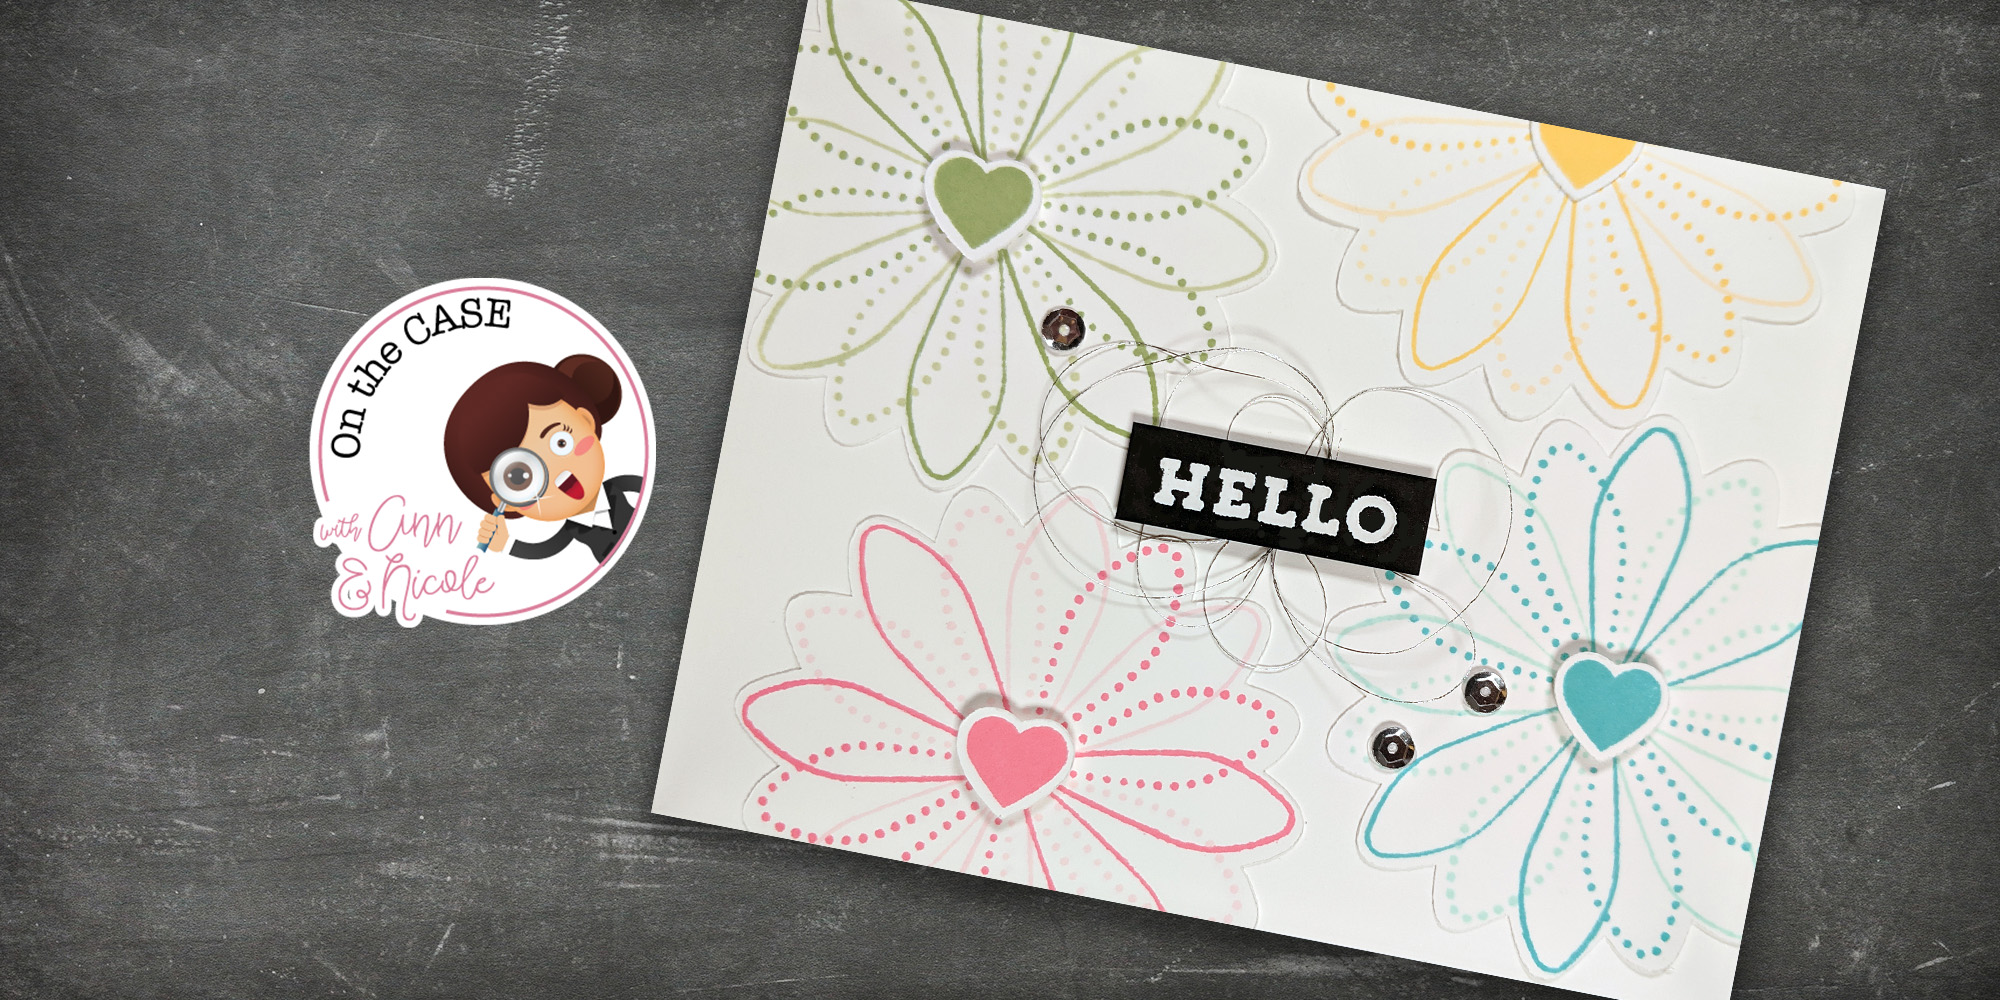 For On the CASE with Ann & Nicole (January 2019). Featuring, Spirograph Turnabout stamp set (Concord & 9th). For more details including step-by-step instructions for CASE-ing this card , click through. #pmretreat #concordand9th #spirograph #floral #hello #handstamped